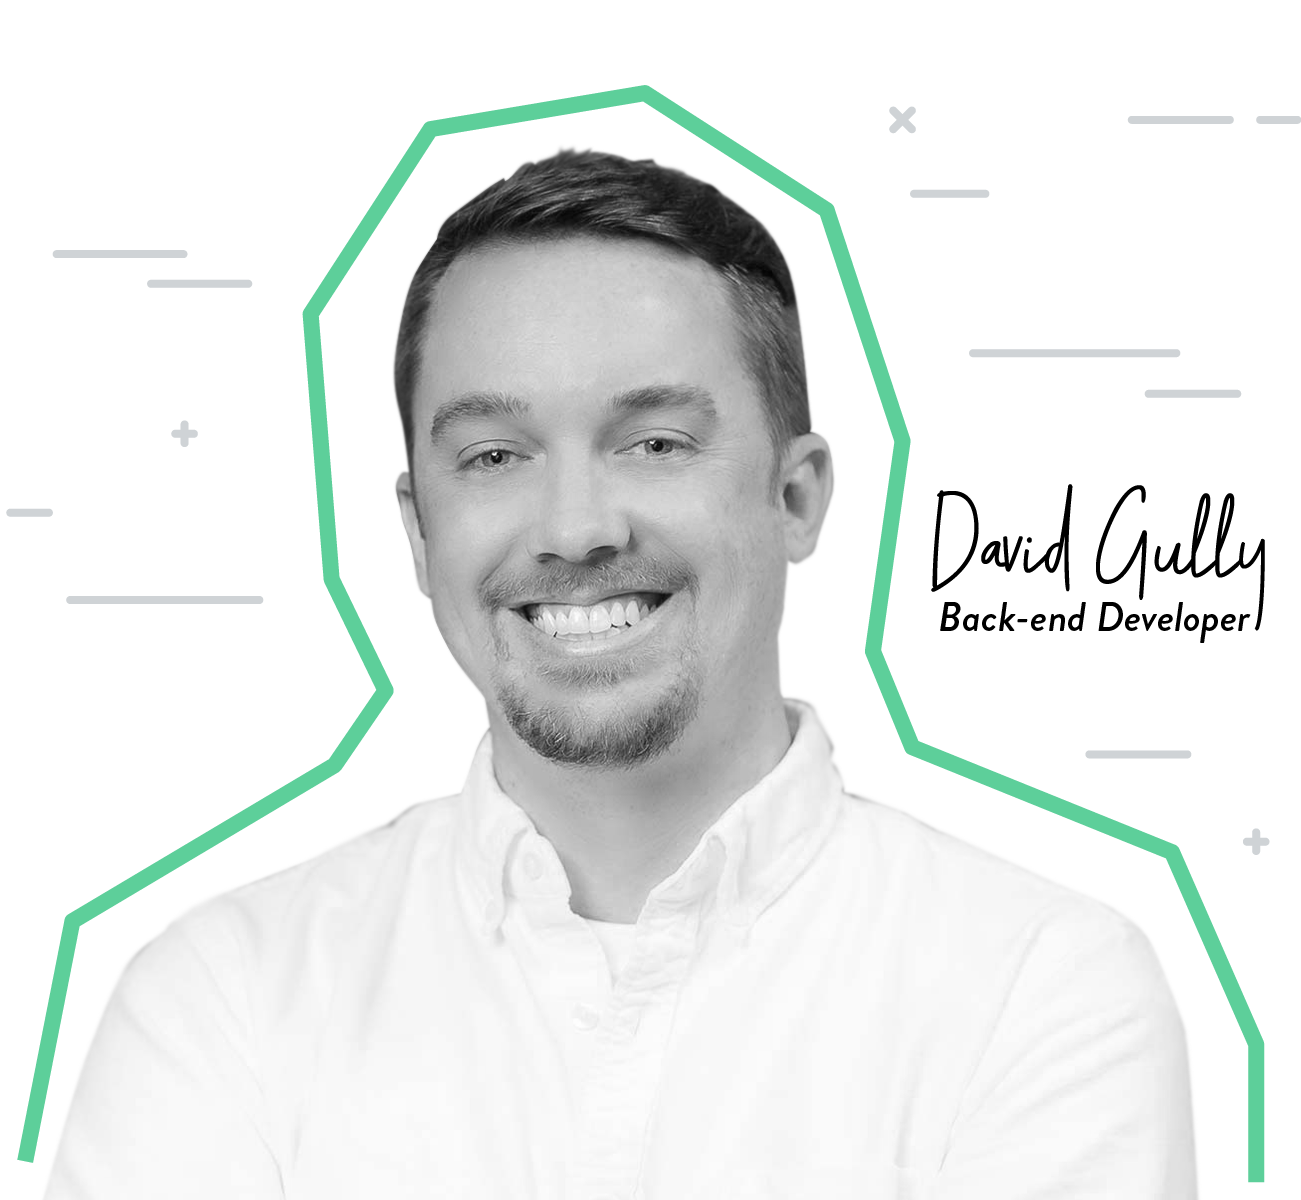 David Gully - Back-end Developer